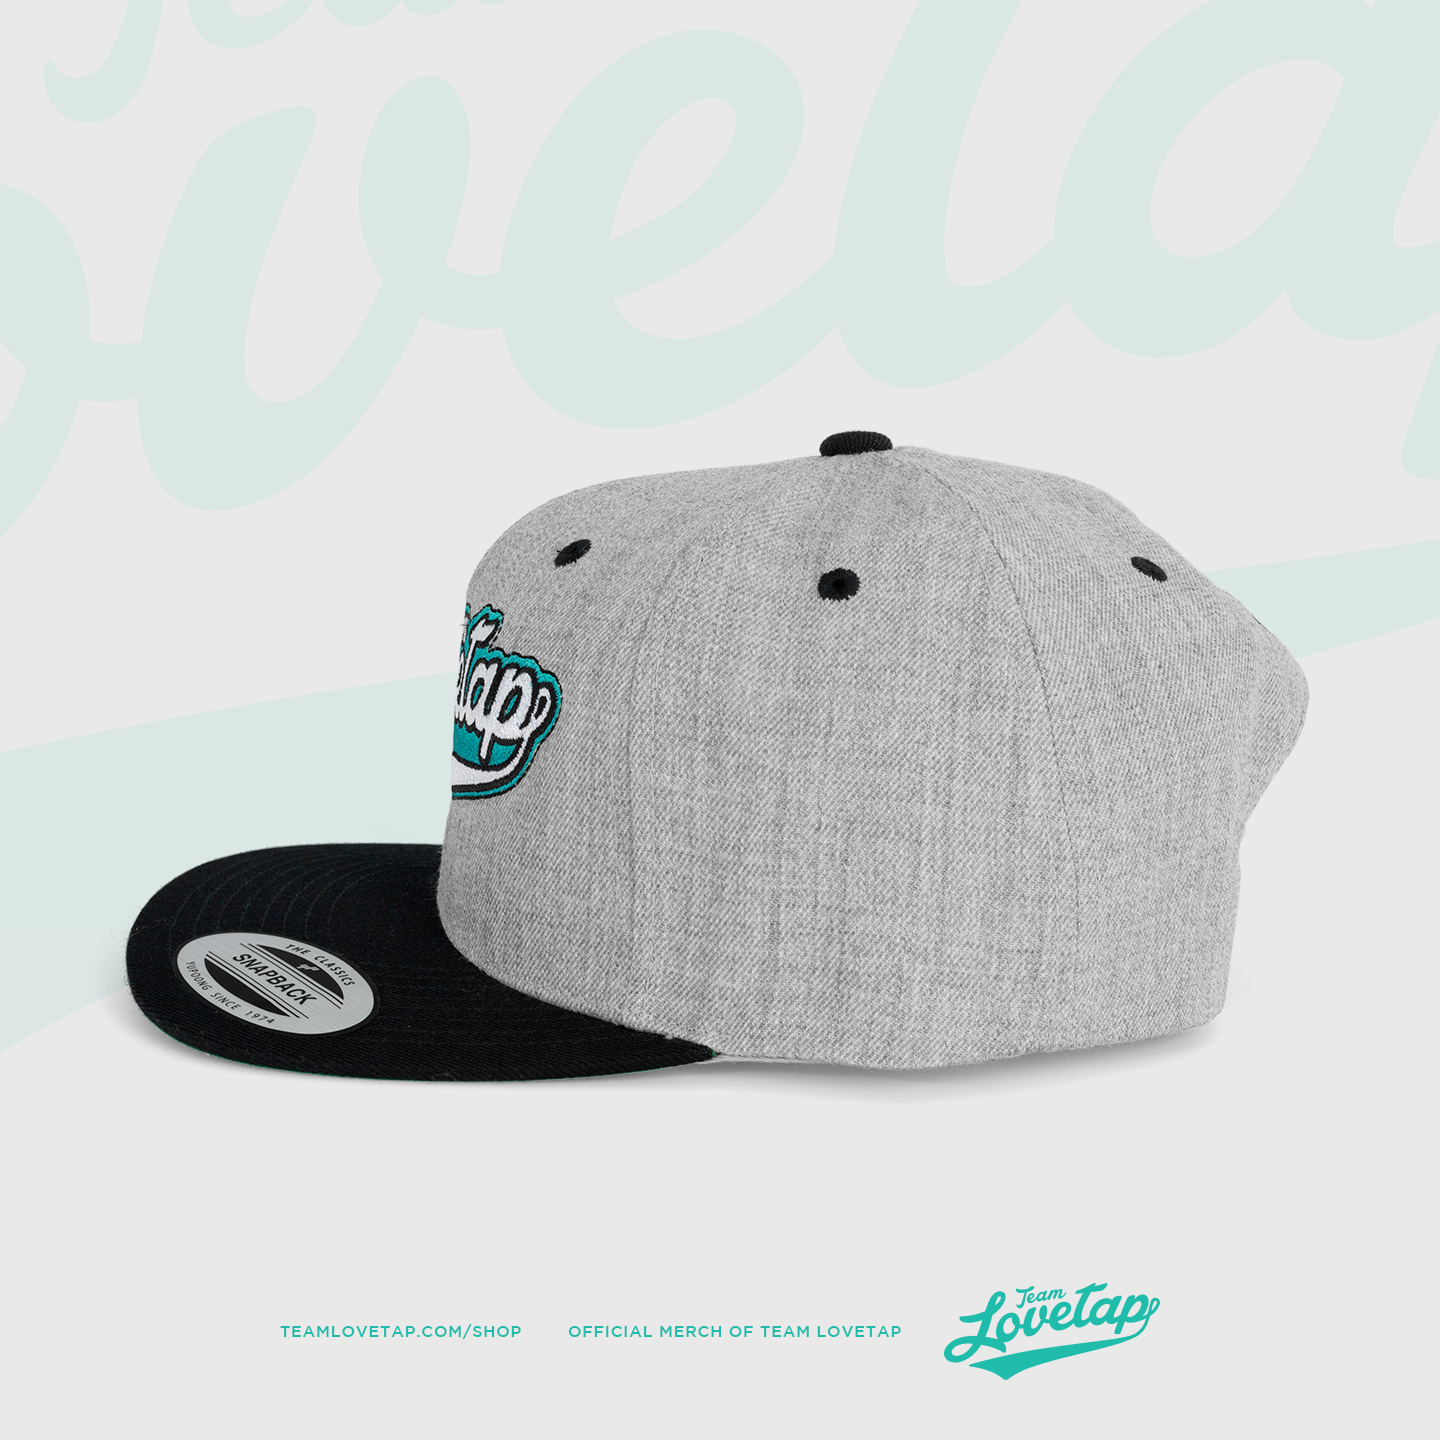 snapback_black_lightgray_teamlovetap_03.jpg